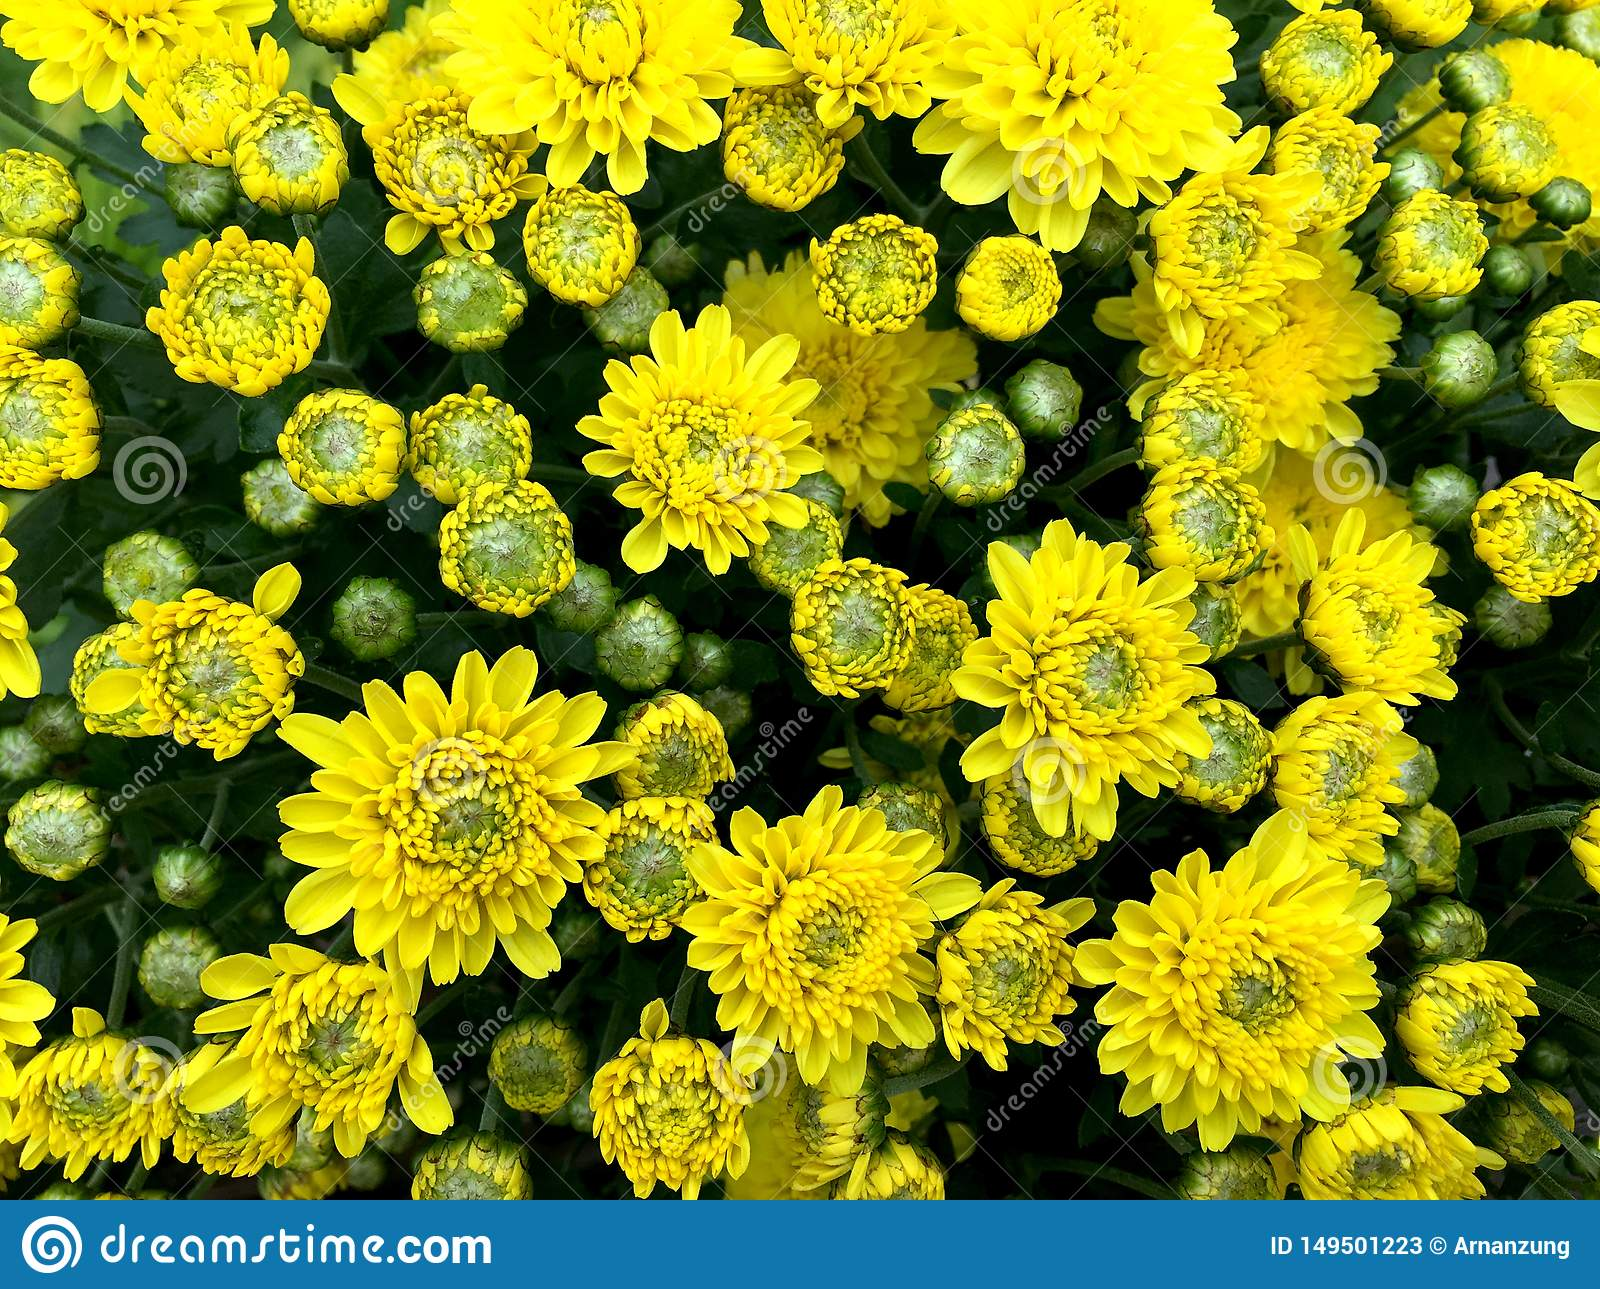 Light yellow mix green chrysanths flower blooming front view in the pot.